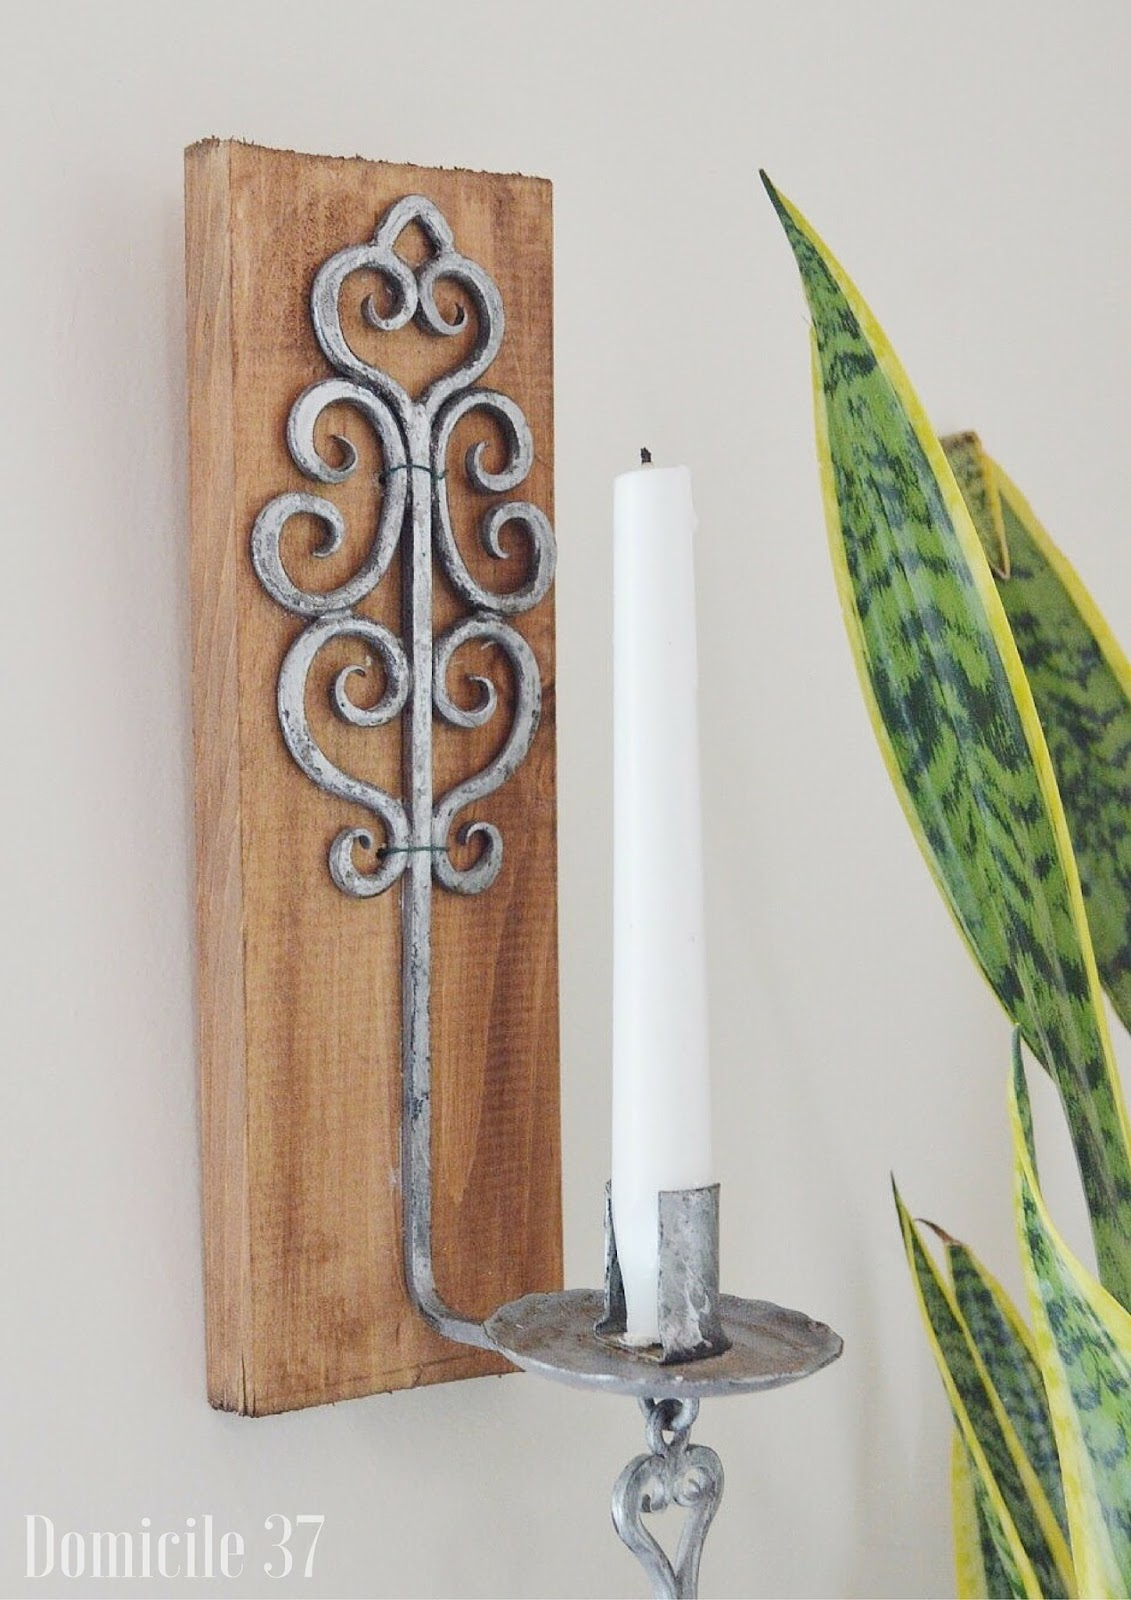 World Market, World Market knockoff, World market inspiration, world market candleholder sconce, wood sconce candleholder DIY, DIY Sconce Candle holder, thrifted candleholder, CeCe Caldwell Walnut Grove Stain